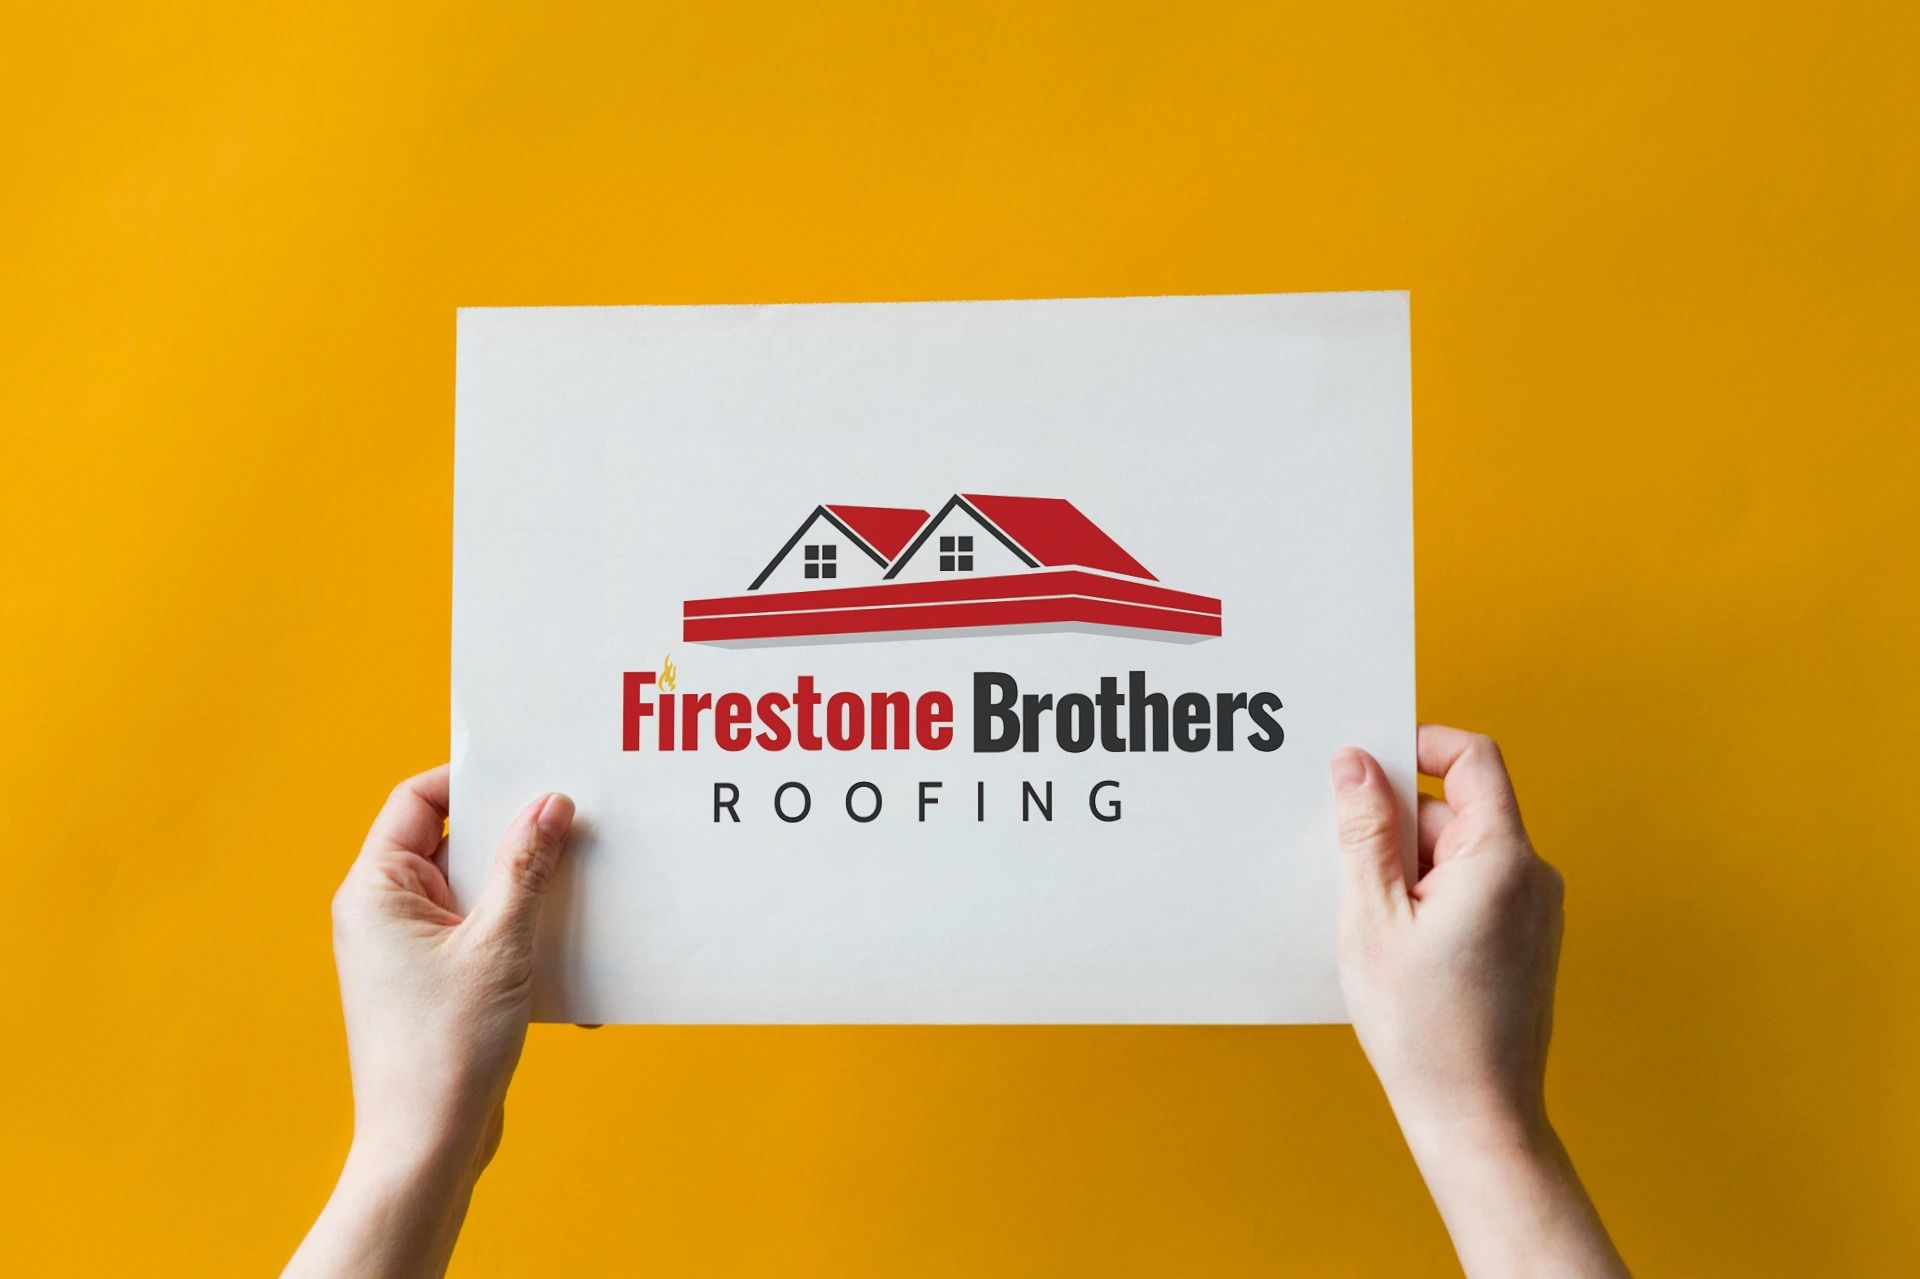 Firestone Brothers Roofing logo